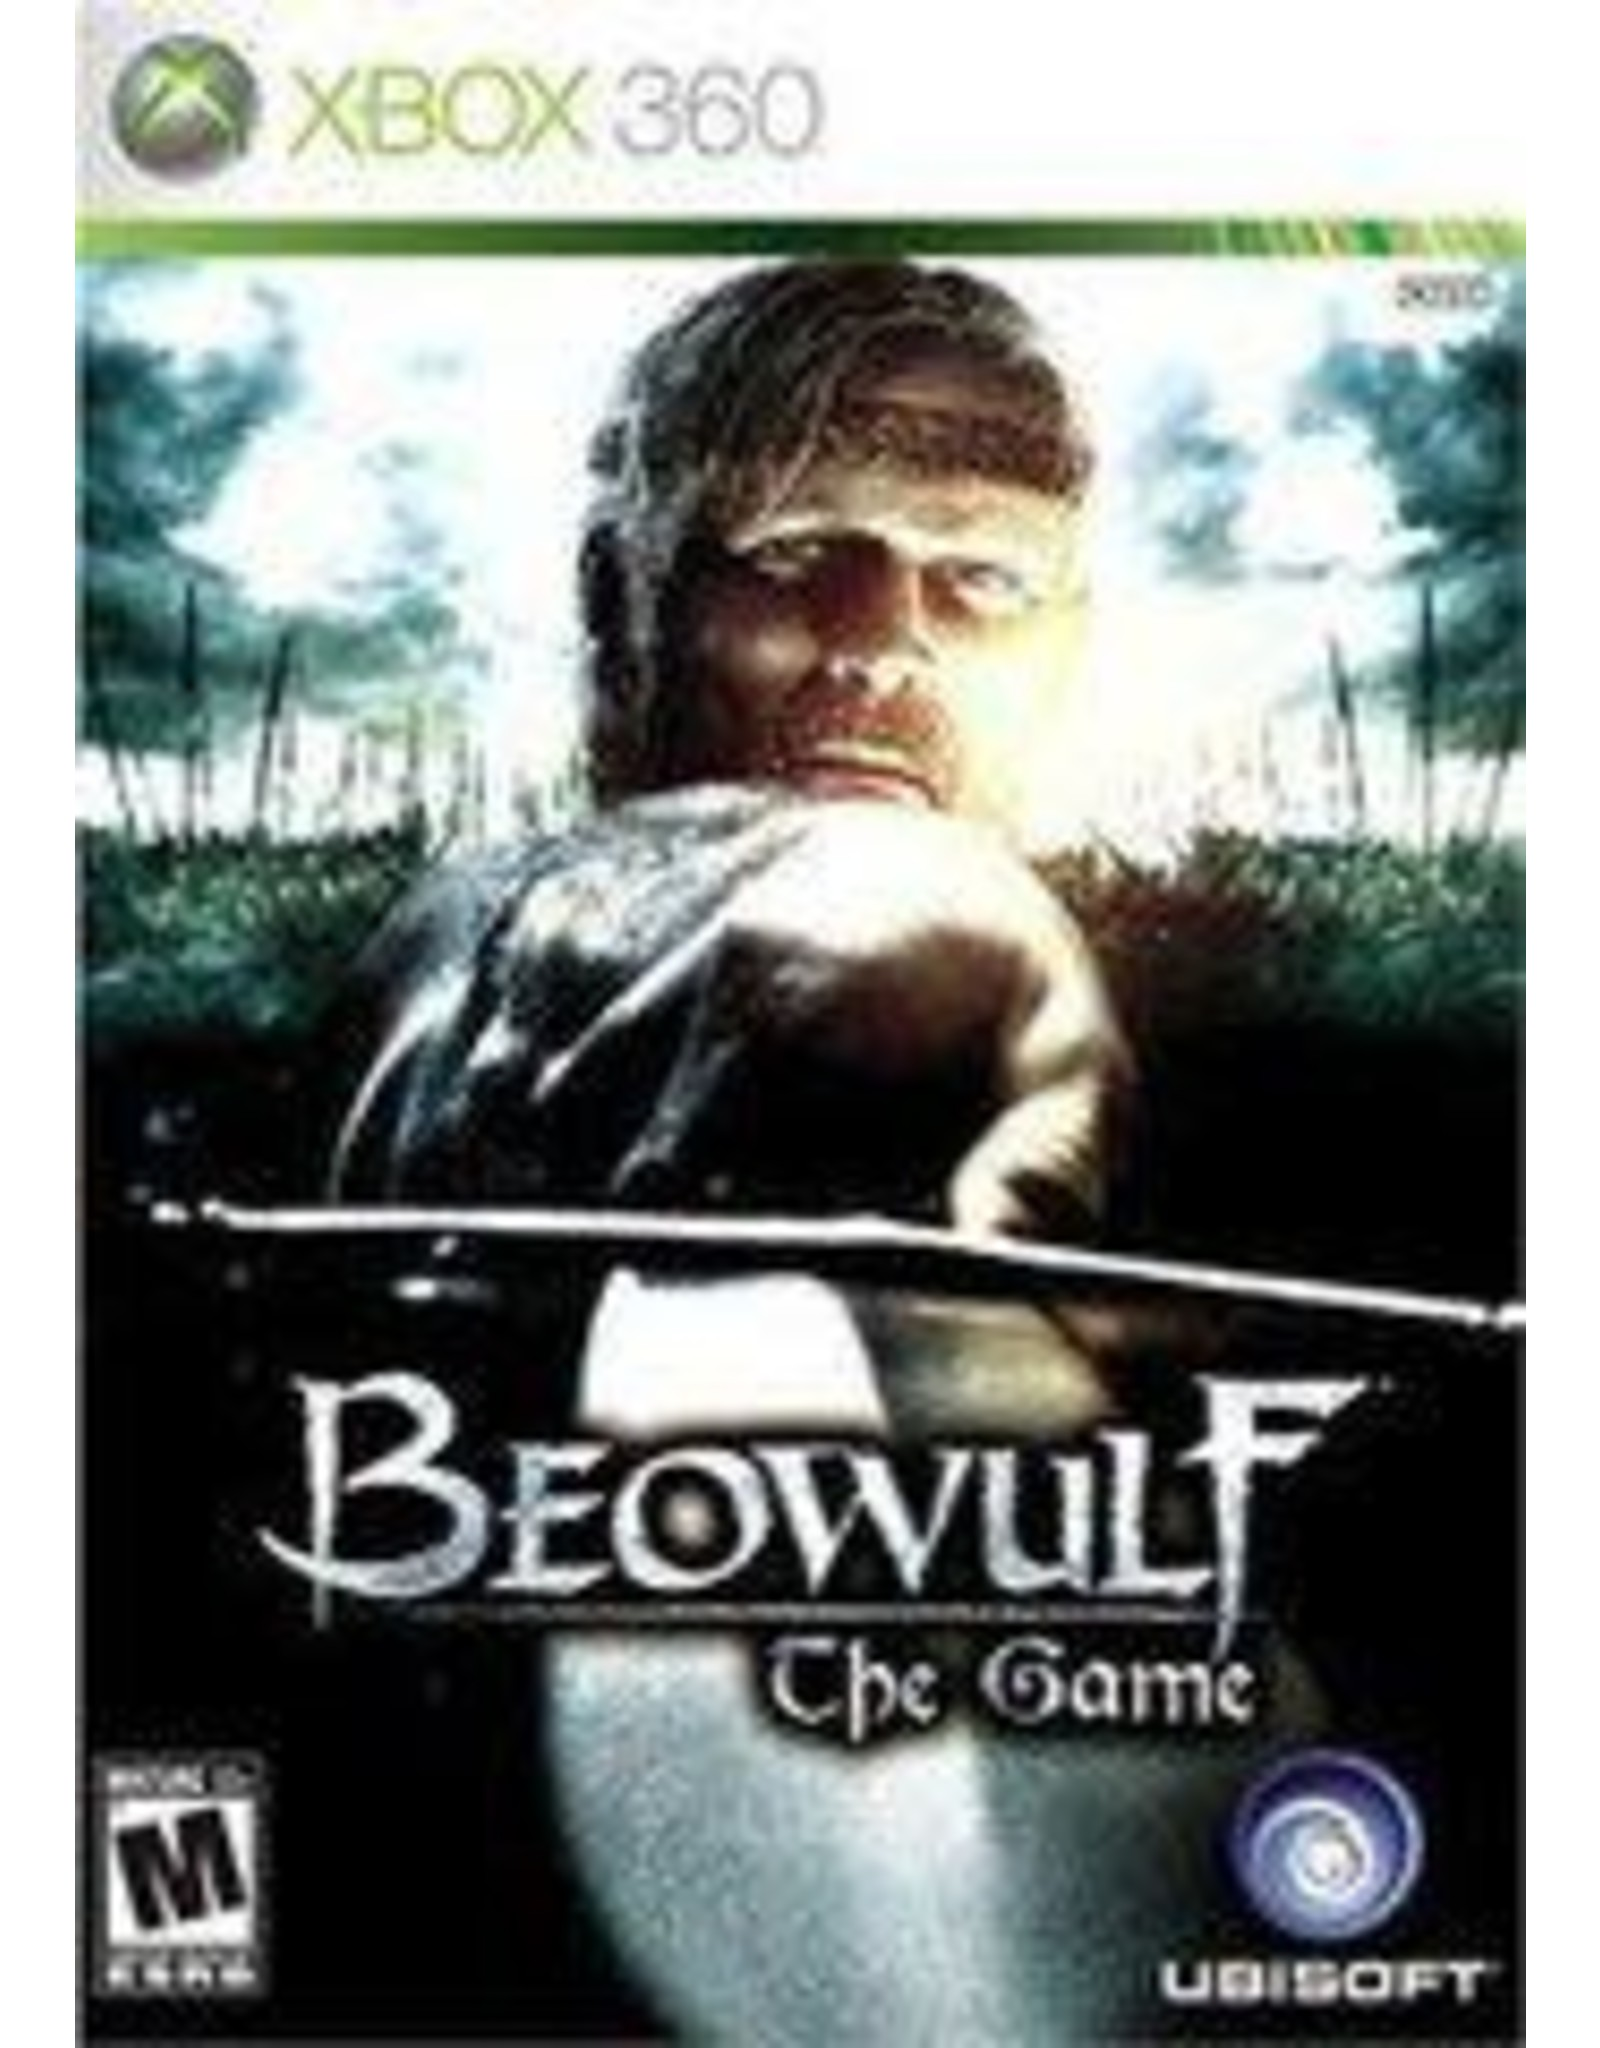 Xbox 360 Beowulf The Game (CiB)